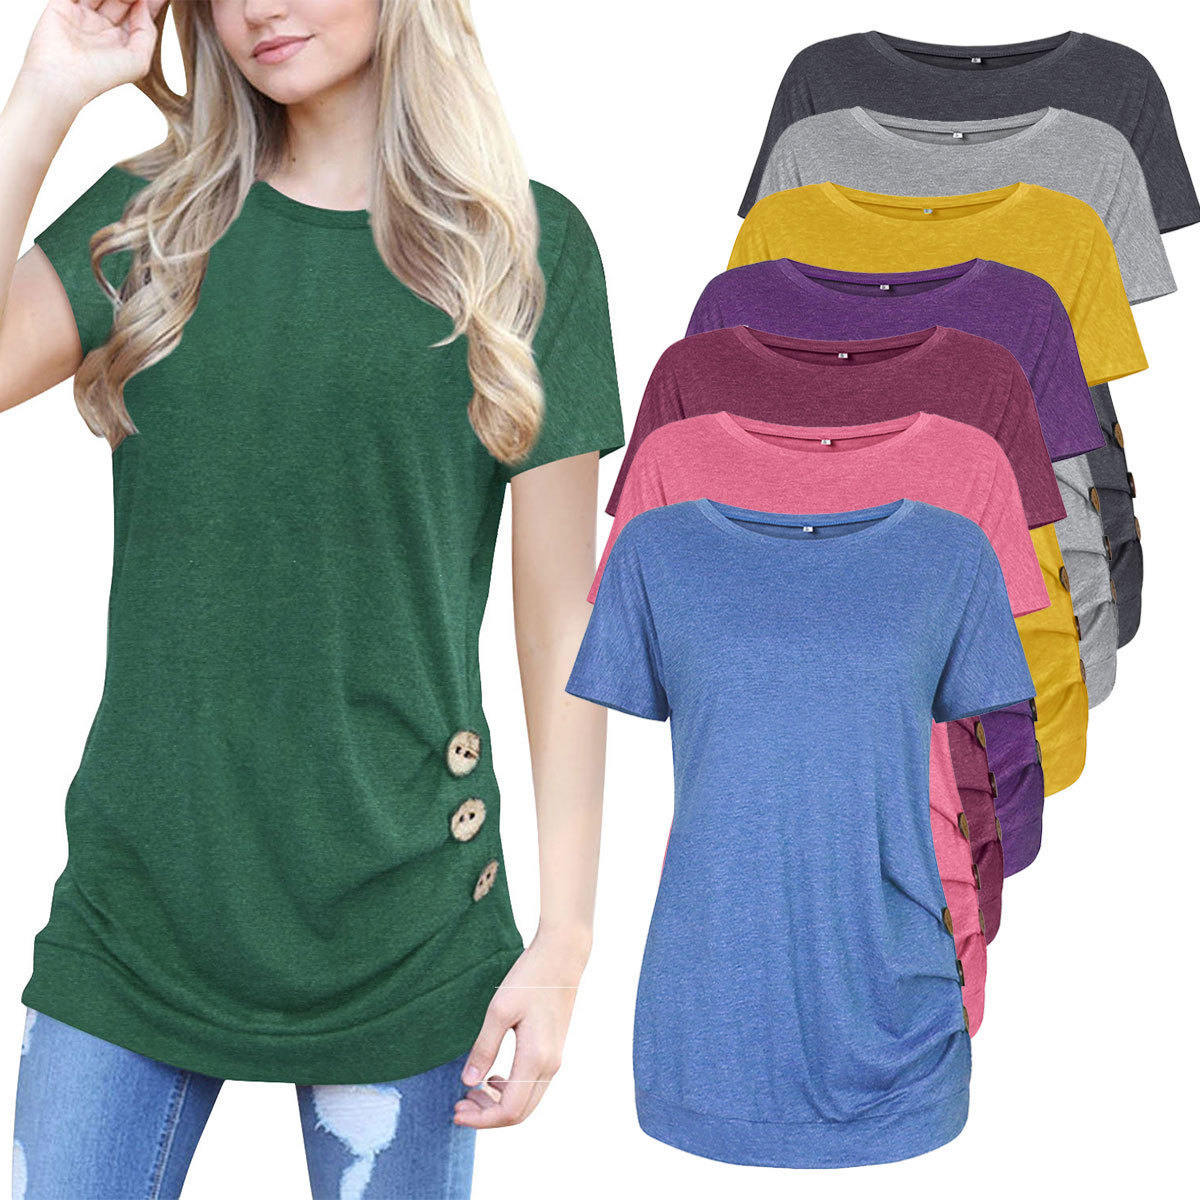 2019 Fashion New tops Button Decoration Short Sleeve T Pity Woman t shirt summer top Comfort leisure women T shirts in T Shirts from Women 39 s Clothing